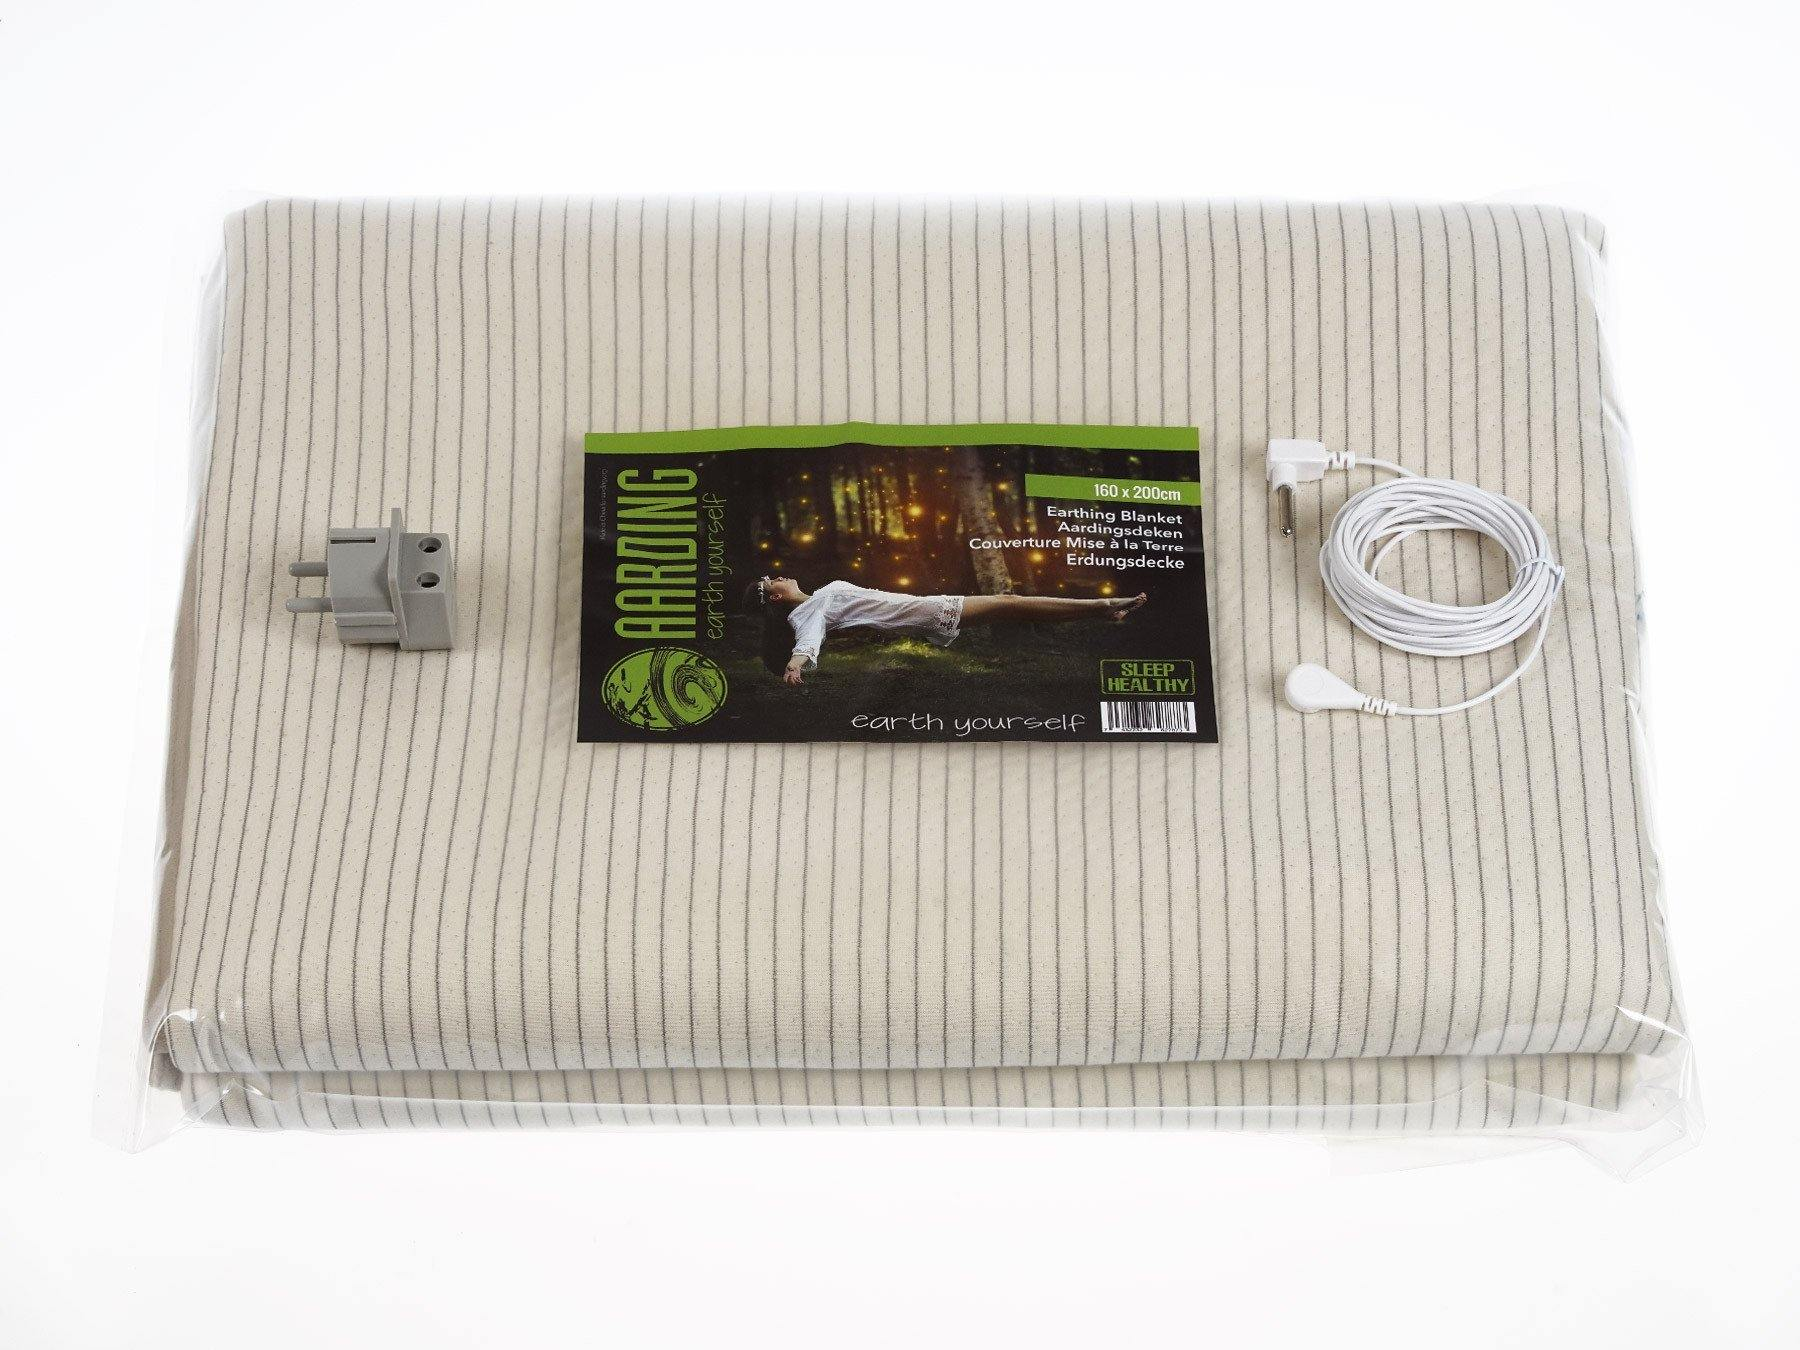 "Grounding Plush Blanket 160 x 200cm (63"" x 80"") (incl. cable 5 m and adapter) - Aarding"